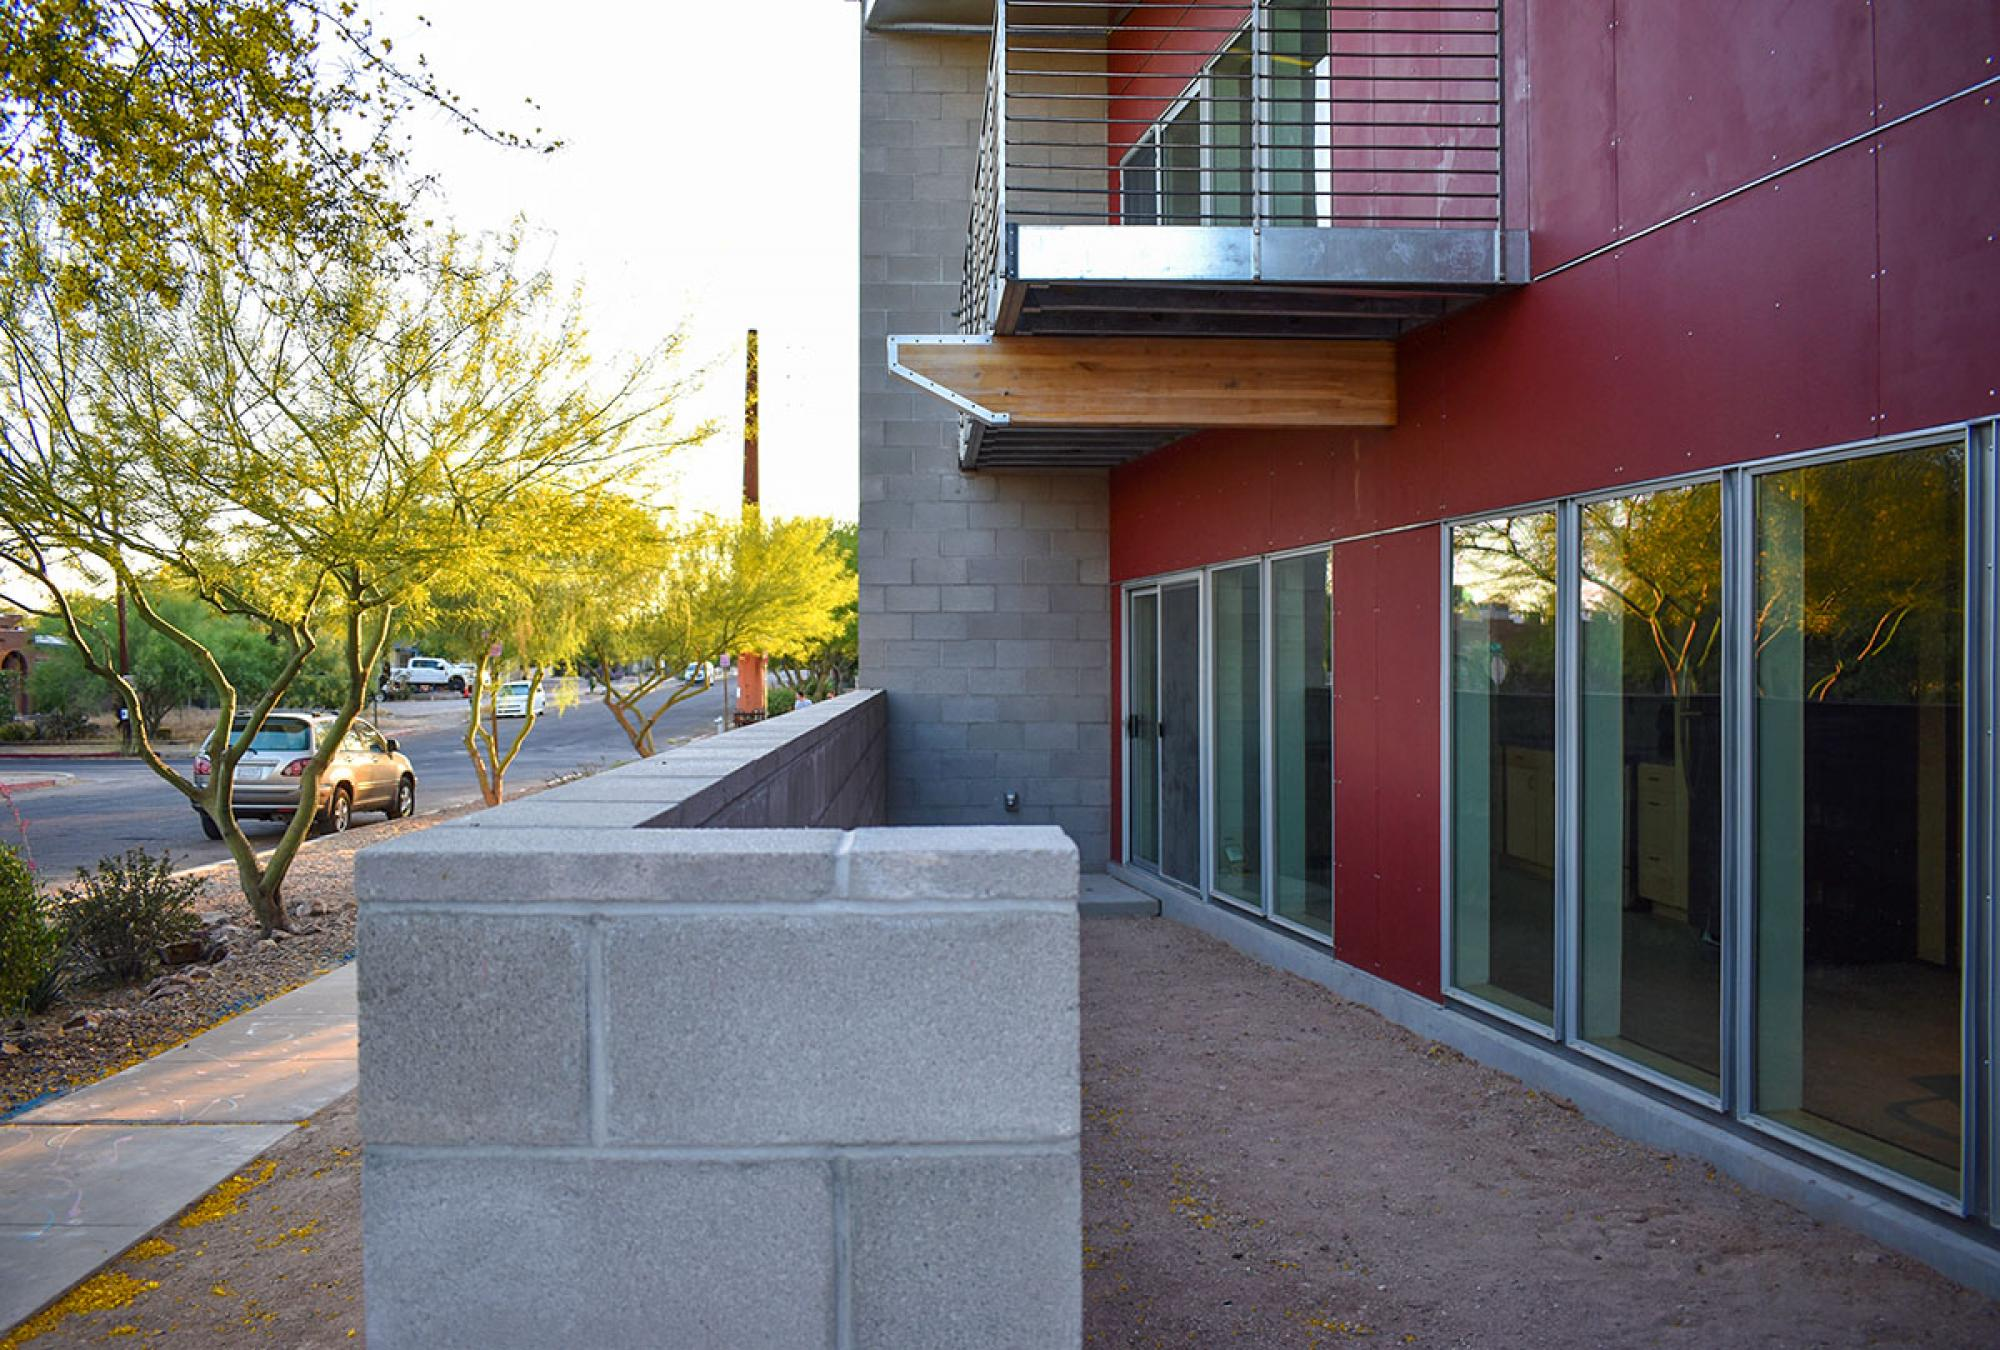 South Stadium Rowhouse 1